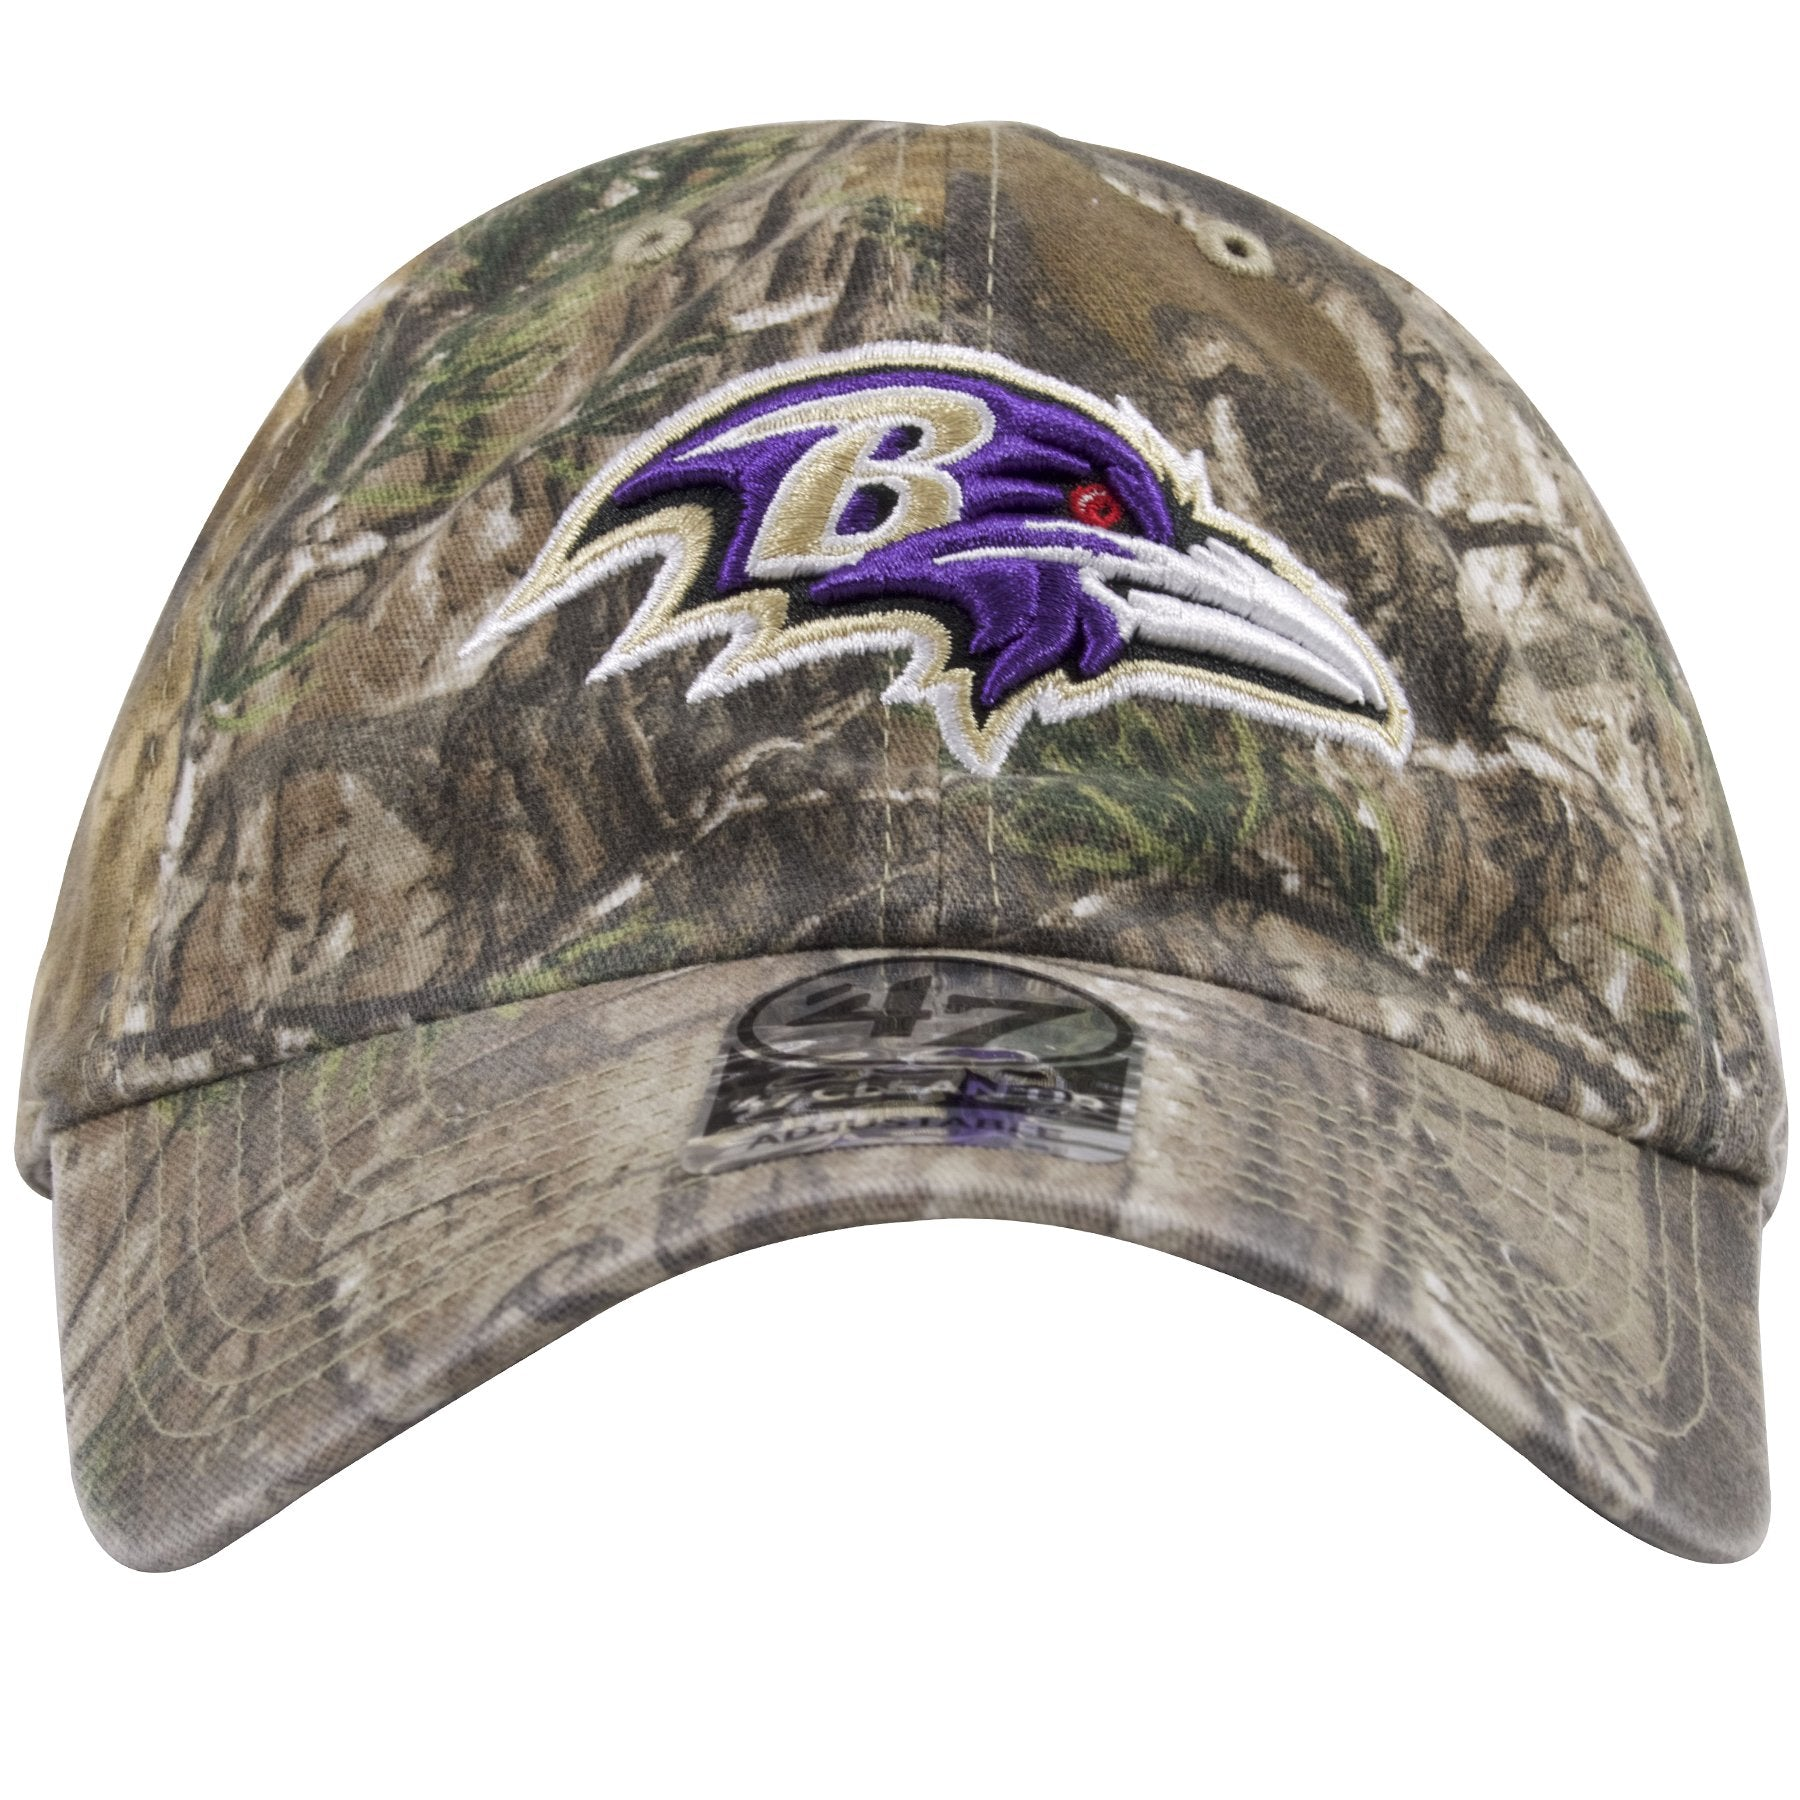 e4f25677 The front of this Realtree Baltimore Ravens Camo Hat shows the Ravens logo  fulling embroidered on